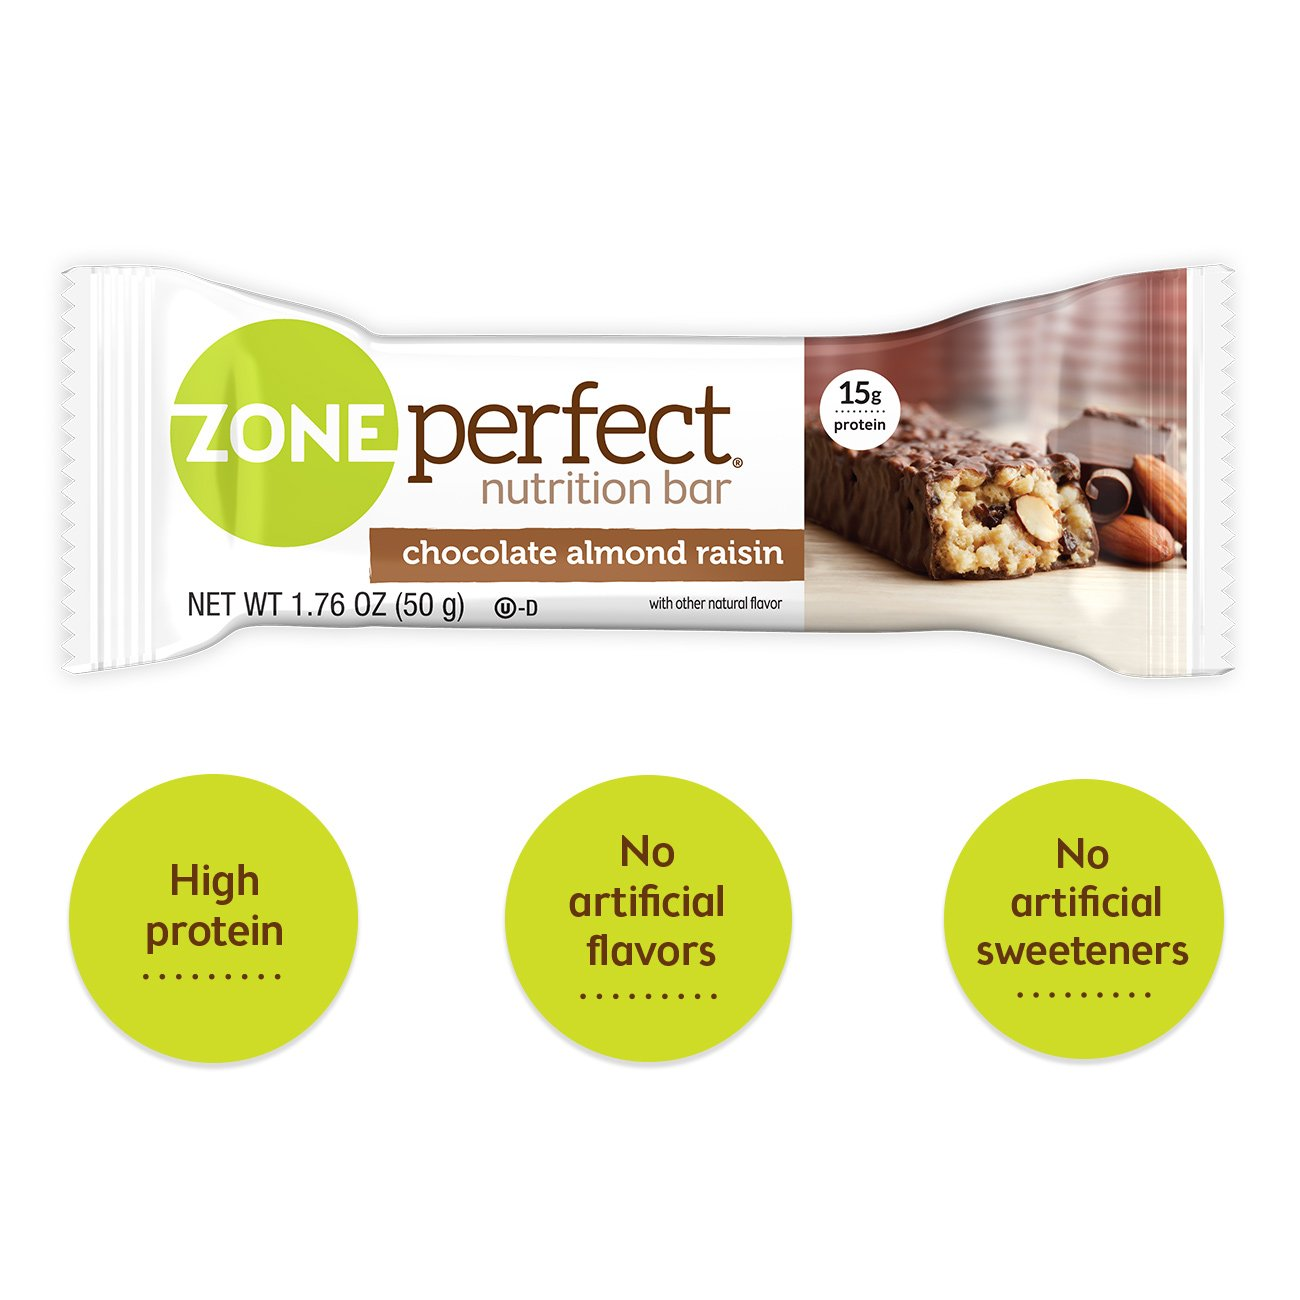 Zone Perfect Nutrition Bar, Chocolate Almond Raisin, 12 Count (Pack of 3) by Zoneperfect Classic (Image #2)